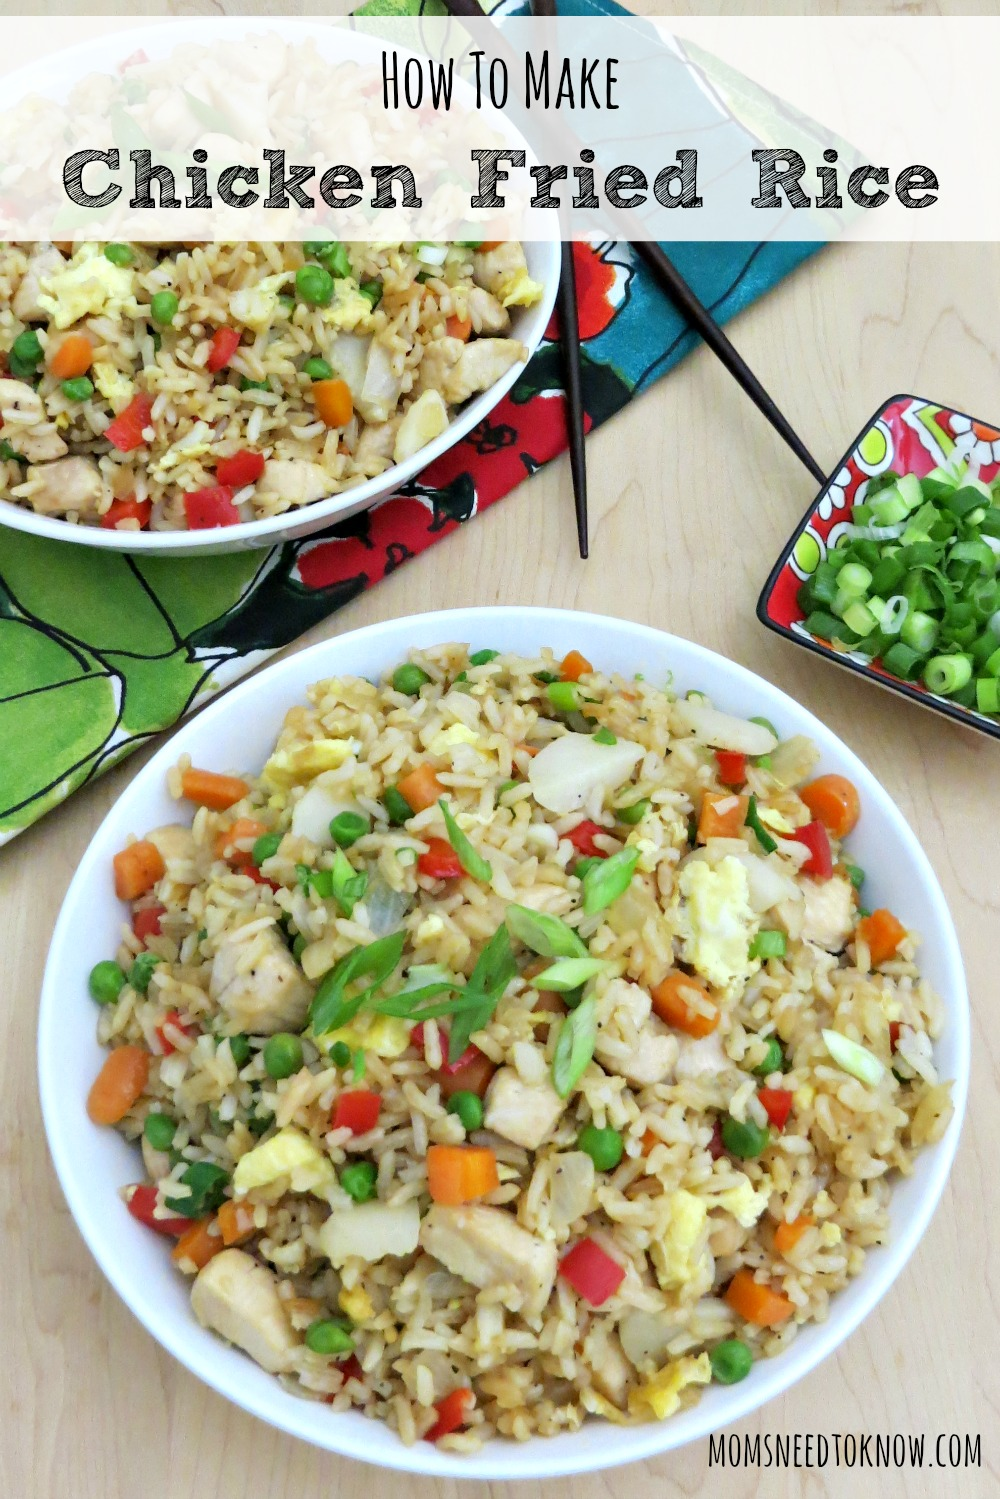 This easy fried rice recipe is so easy to make and will save you money on the Chinese takeout! It cooks up pretty quick and can easily be customized!